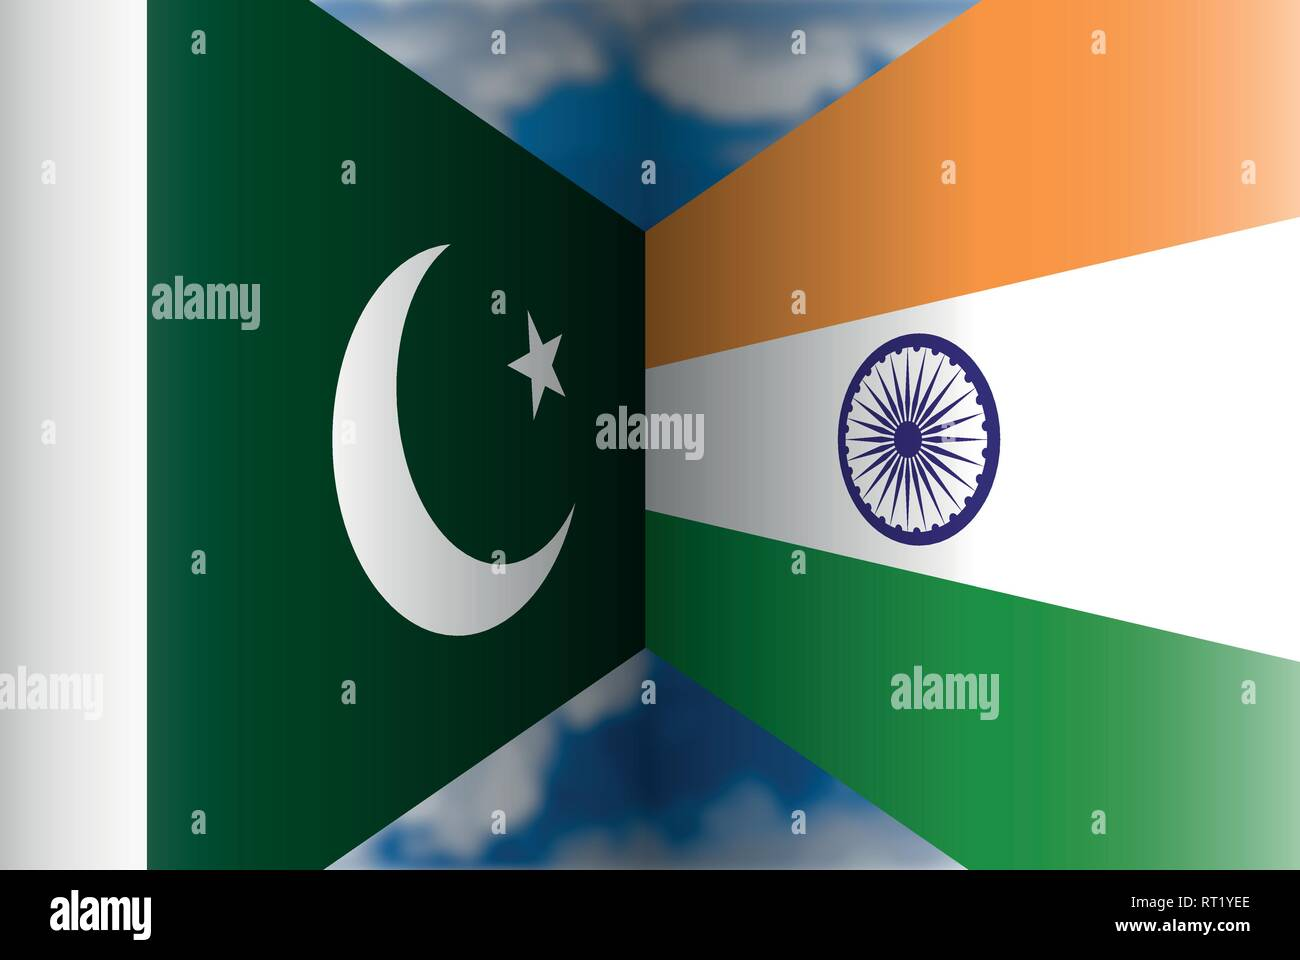 Pakistan VS India flags, vector illustration - Stock Vector